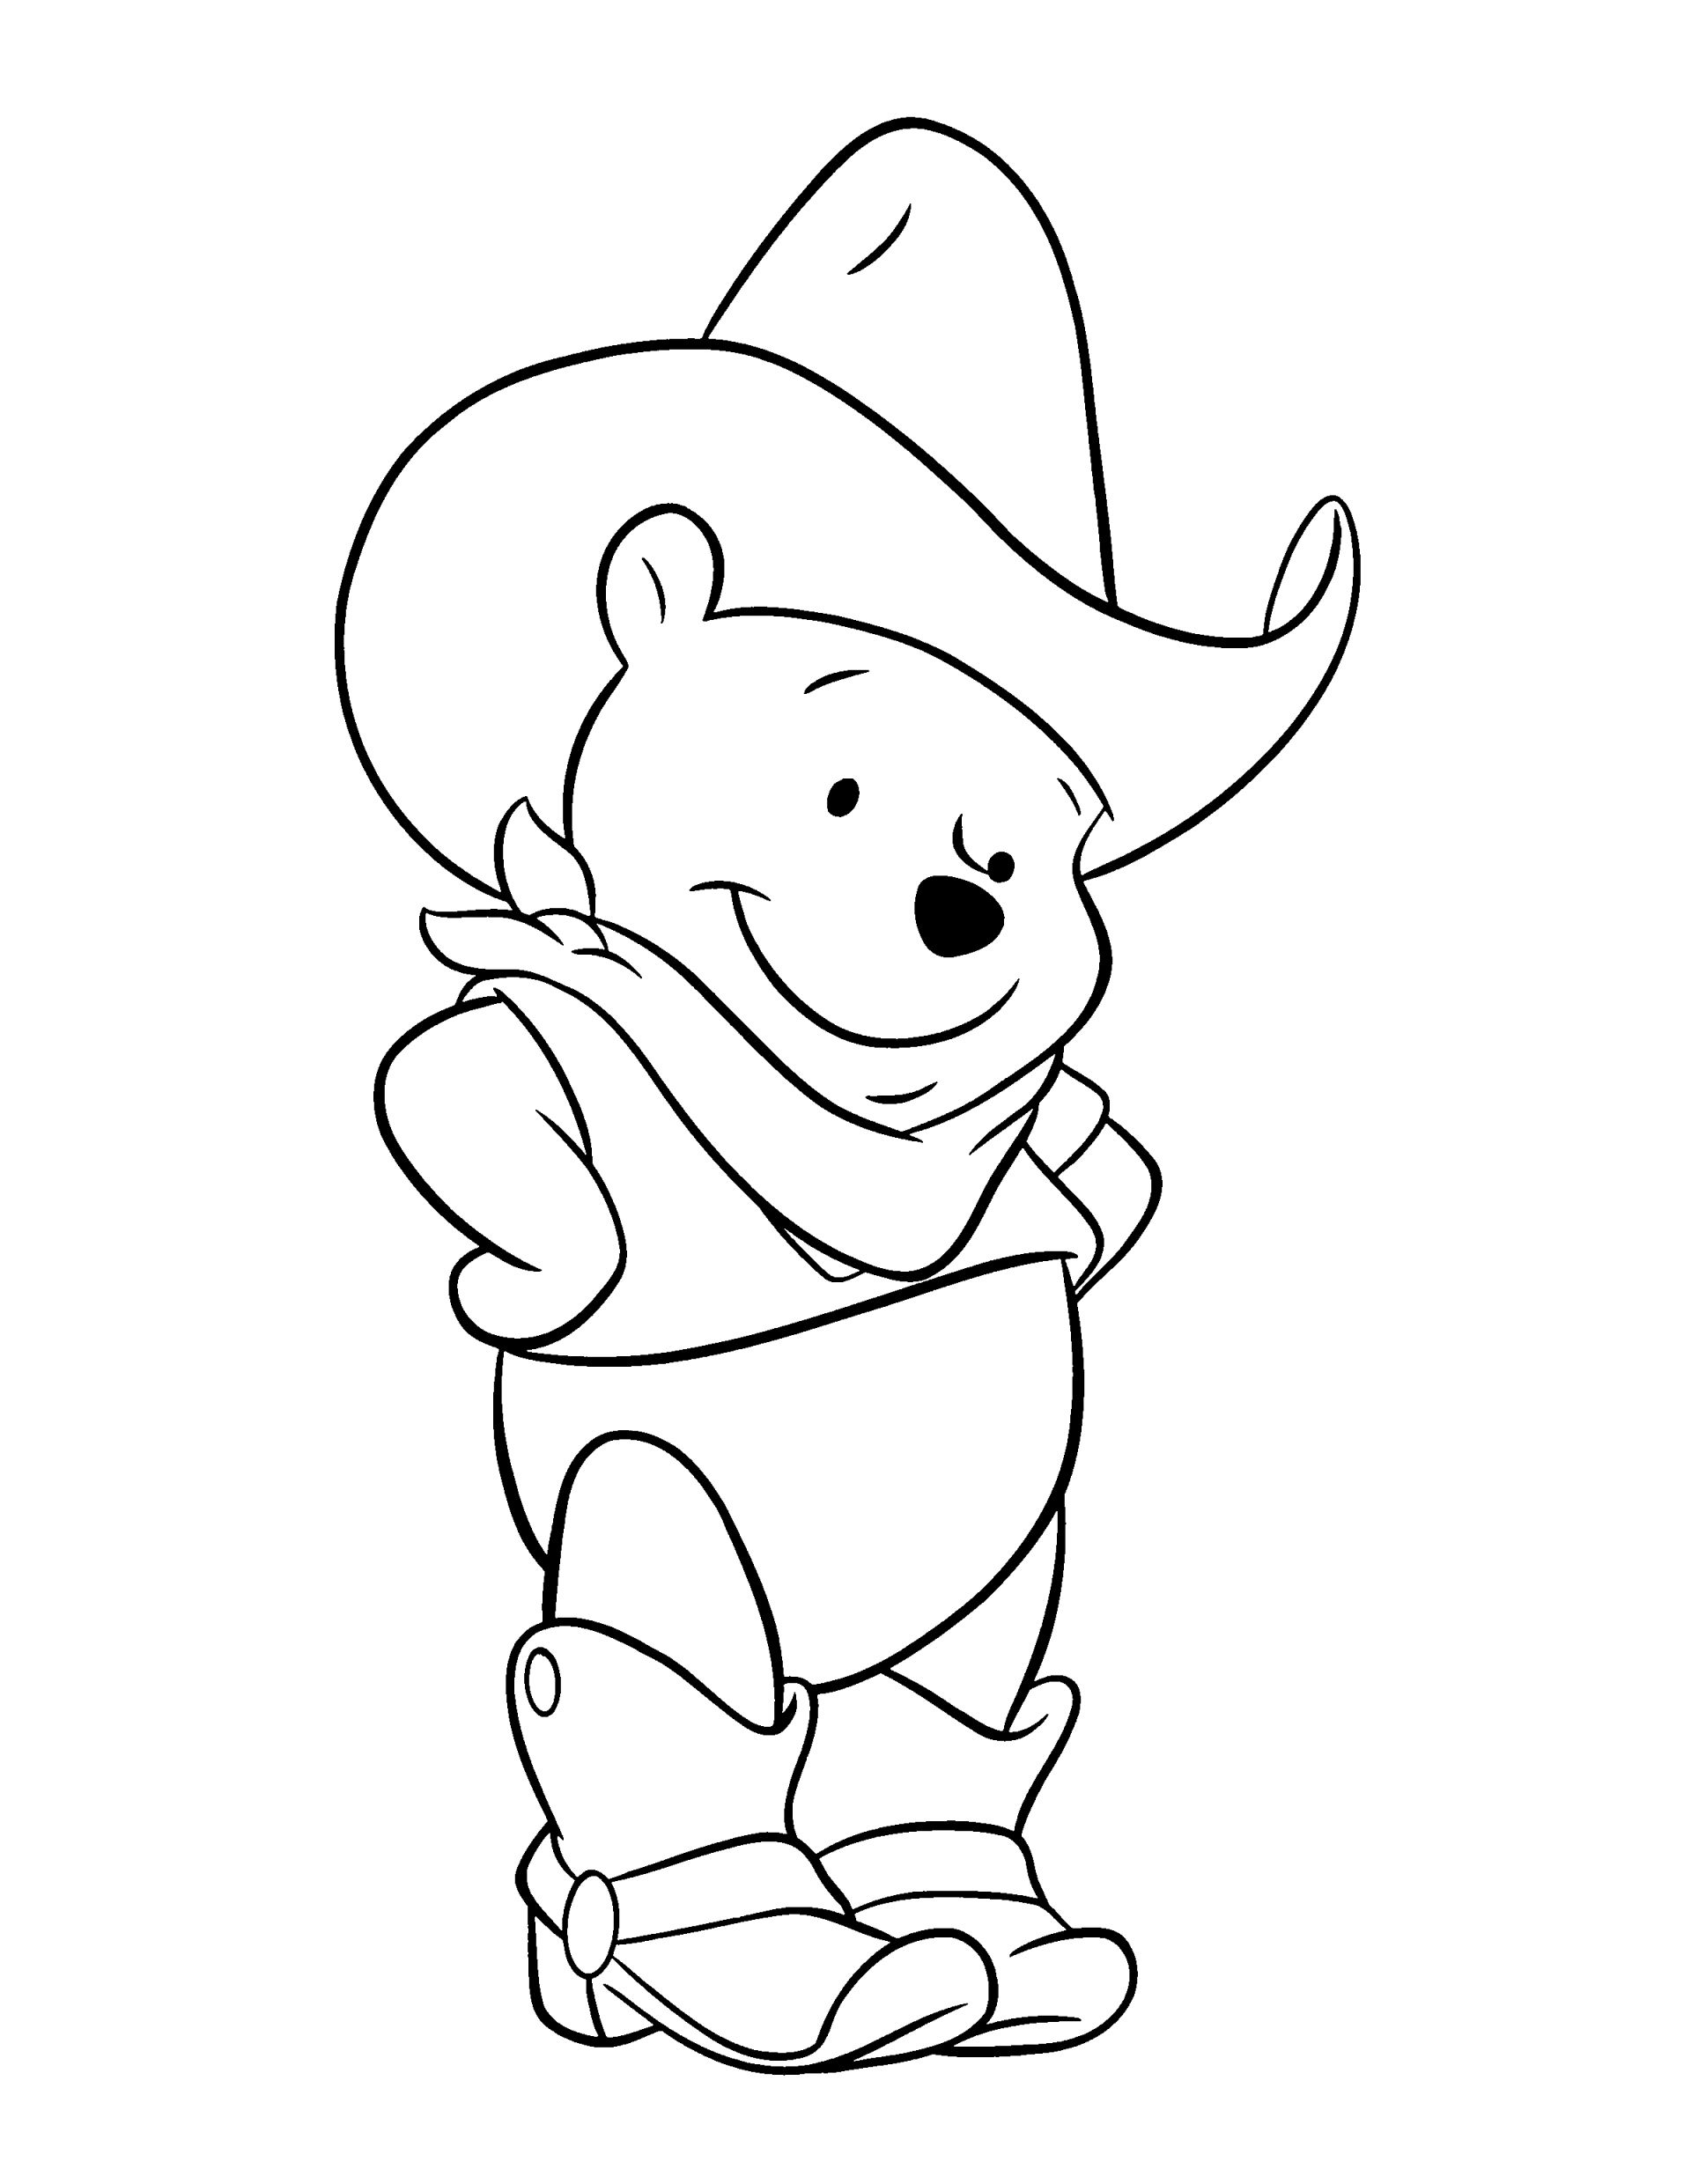 winnie the pooh coloring pages car cartoon cartoons color - Cartoon Coloring Pages